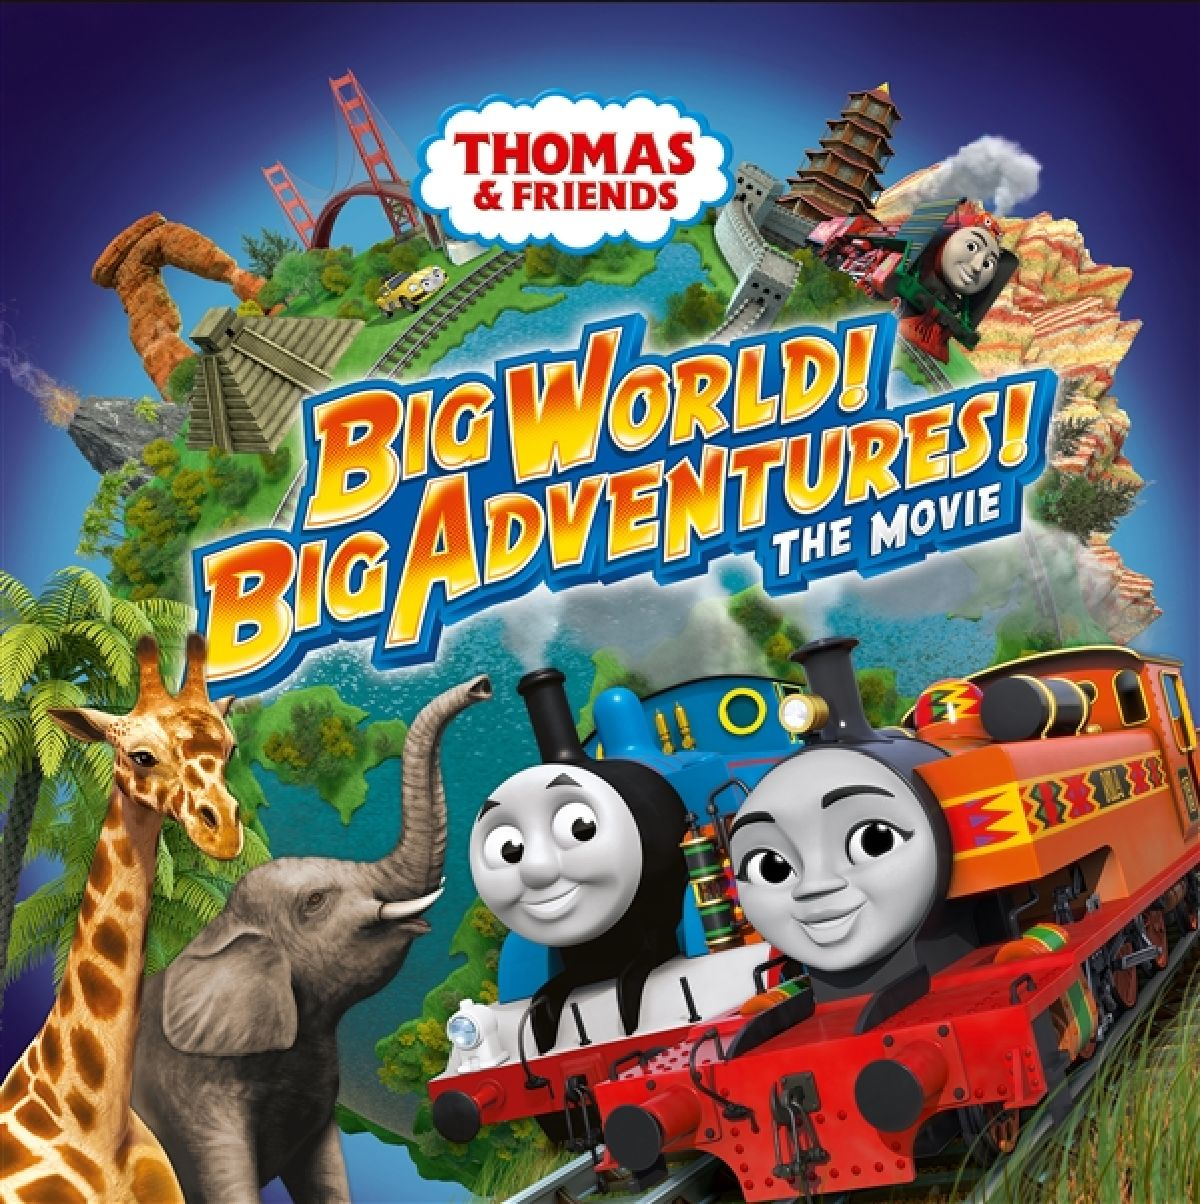 'Thomas & Friends: Big World! Big Adventures! The Movie' movie poster